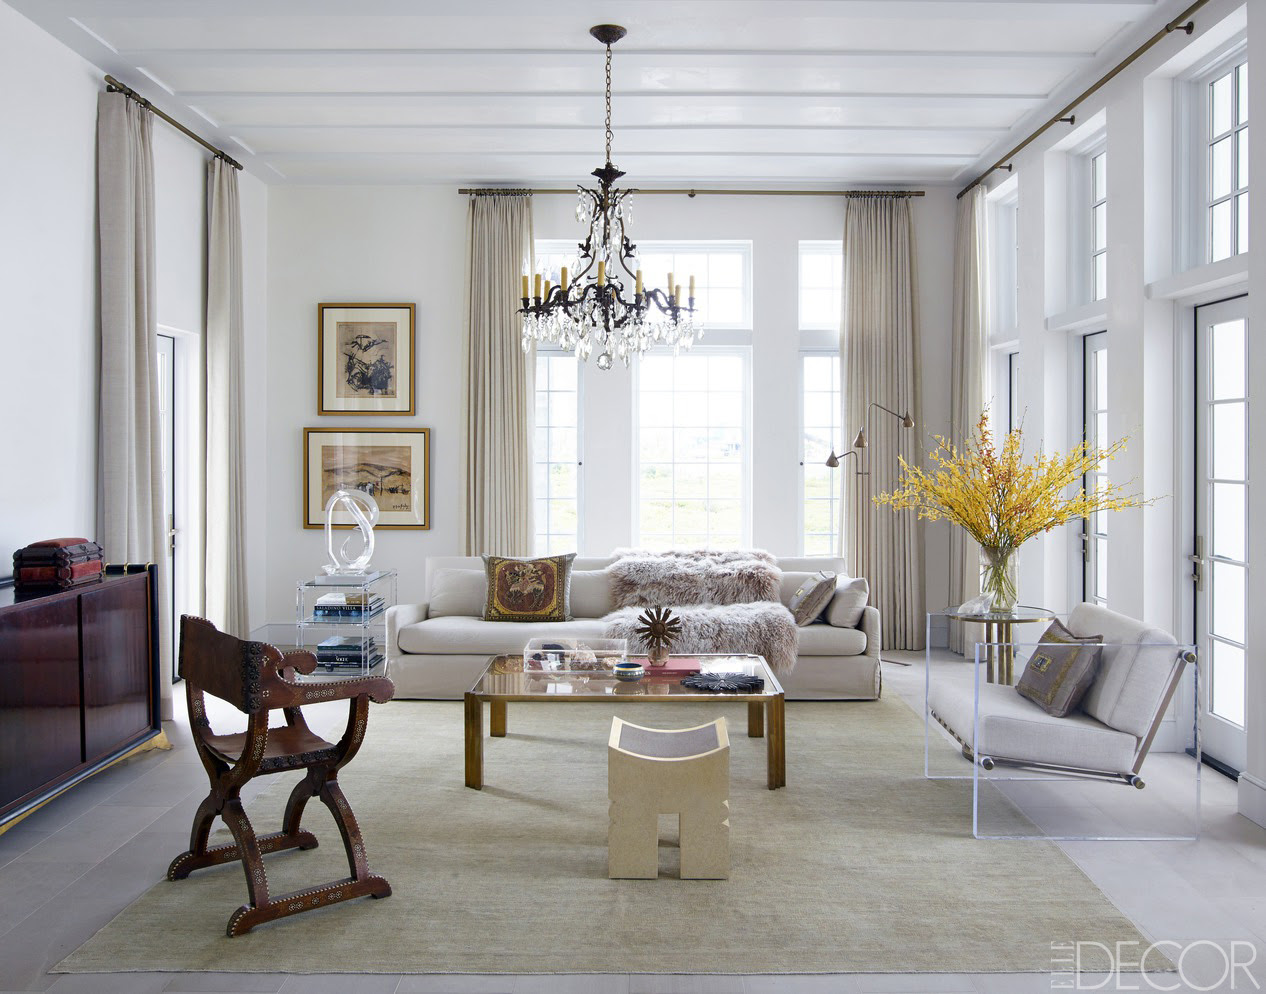 Chic Living Room Decorating Ideas and Design - ELLE DECOR